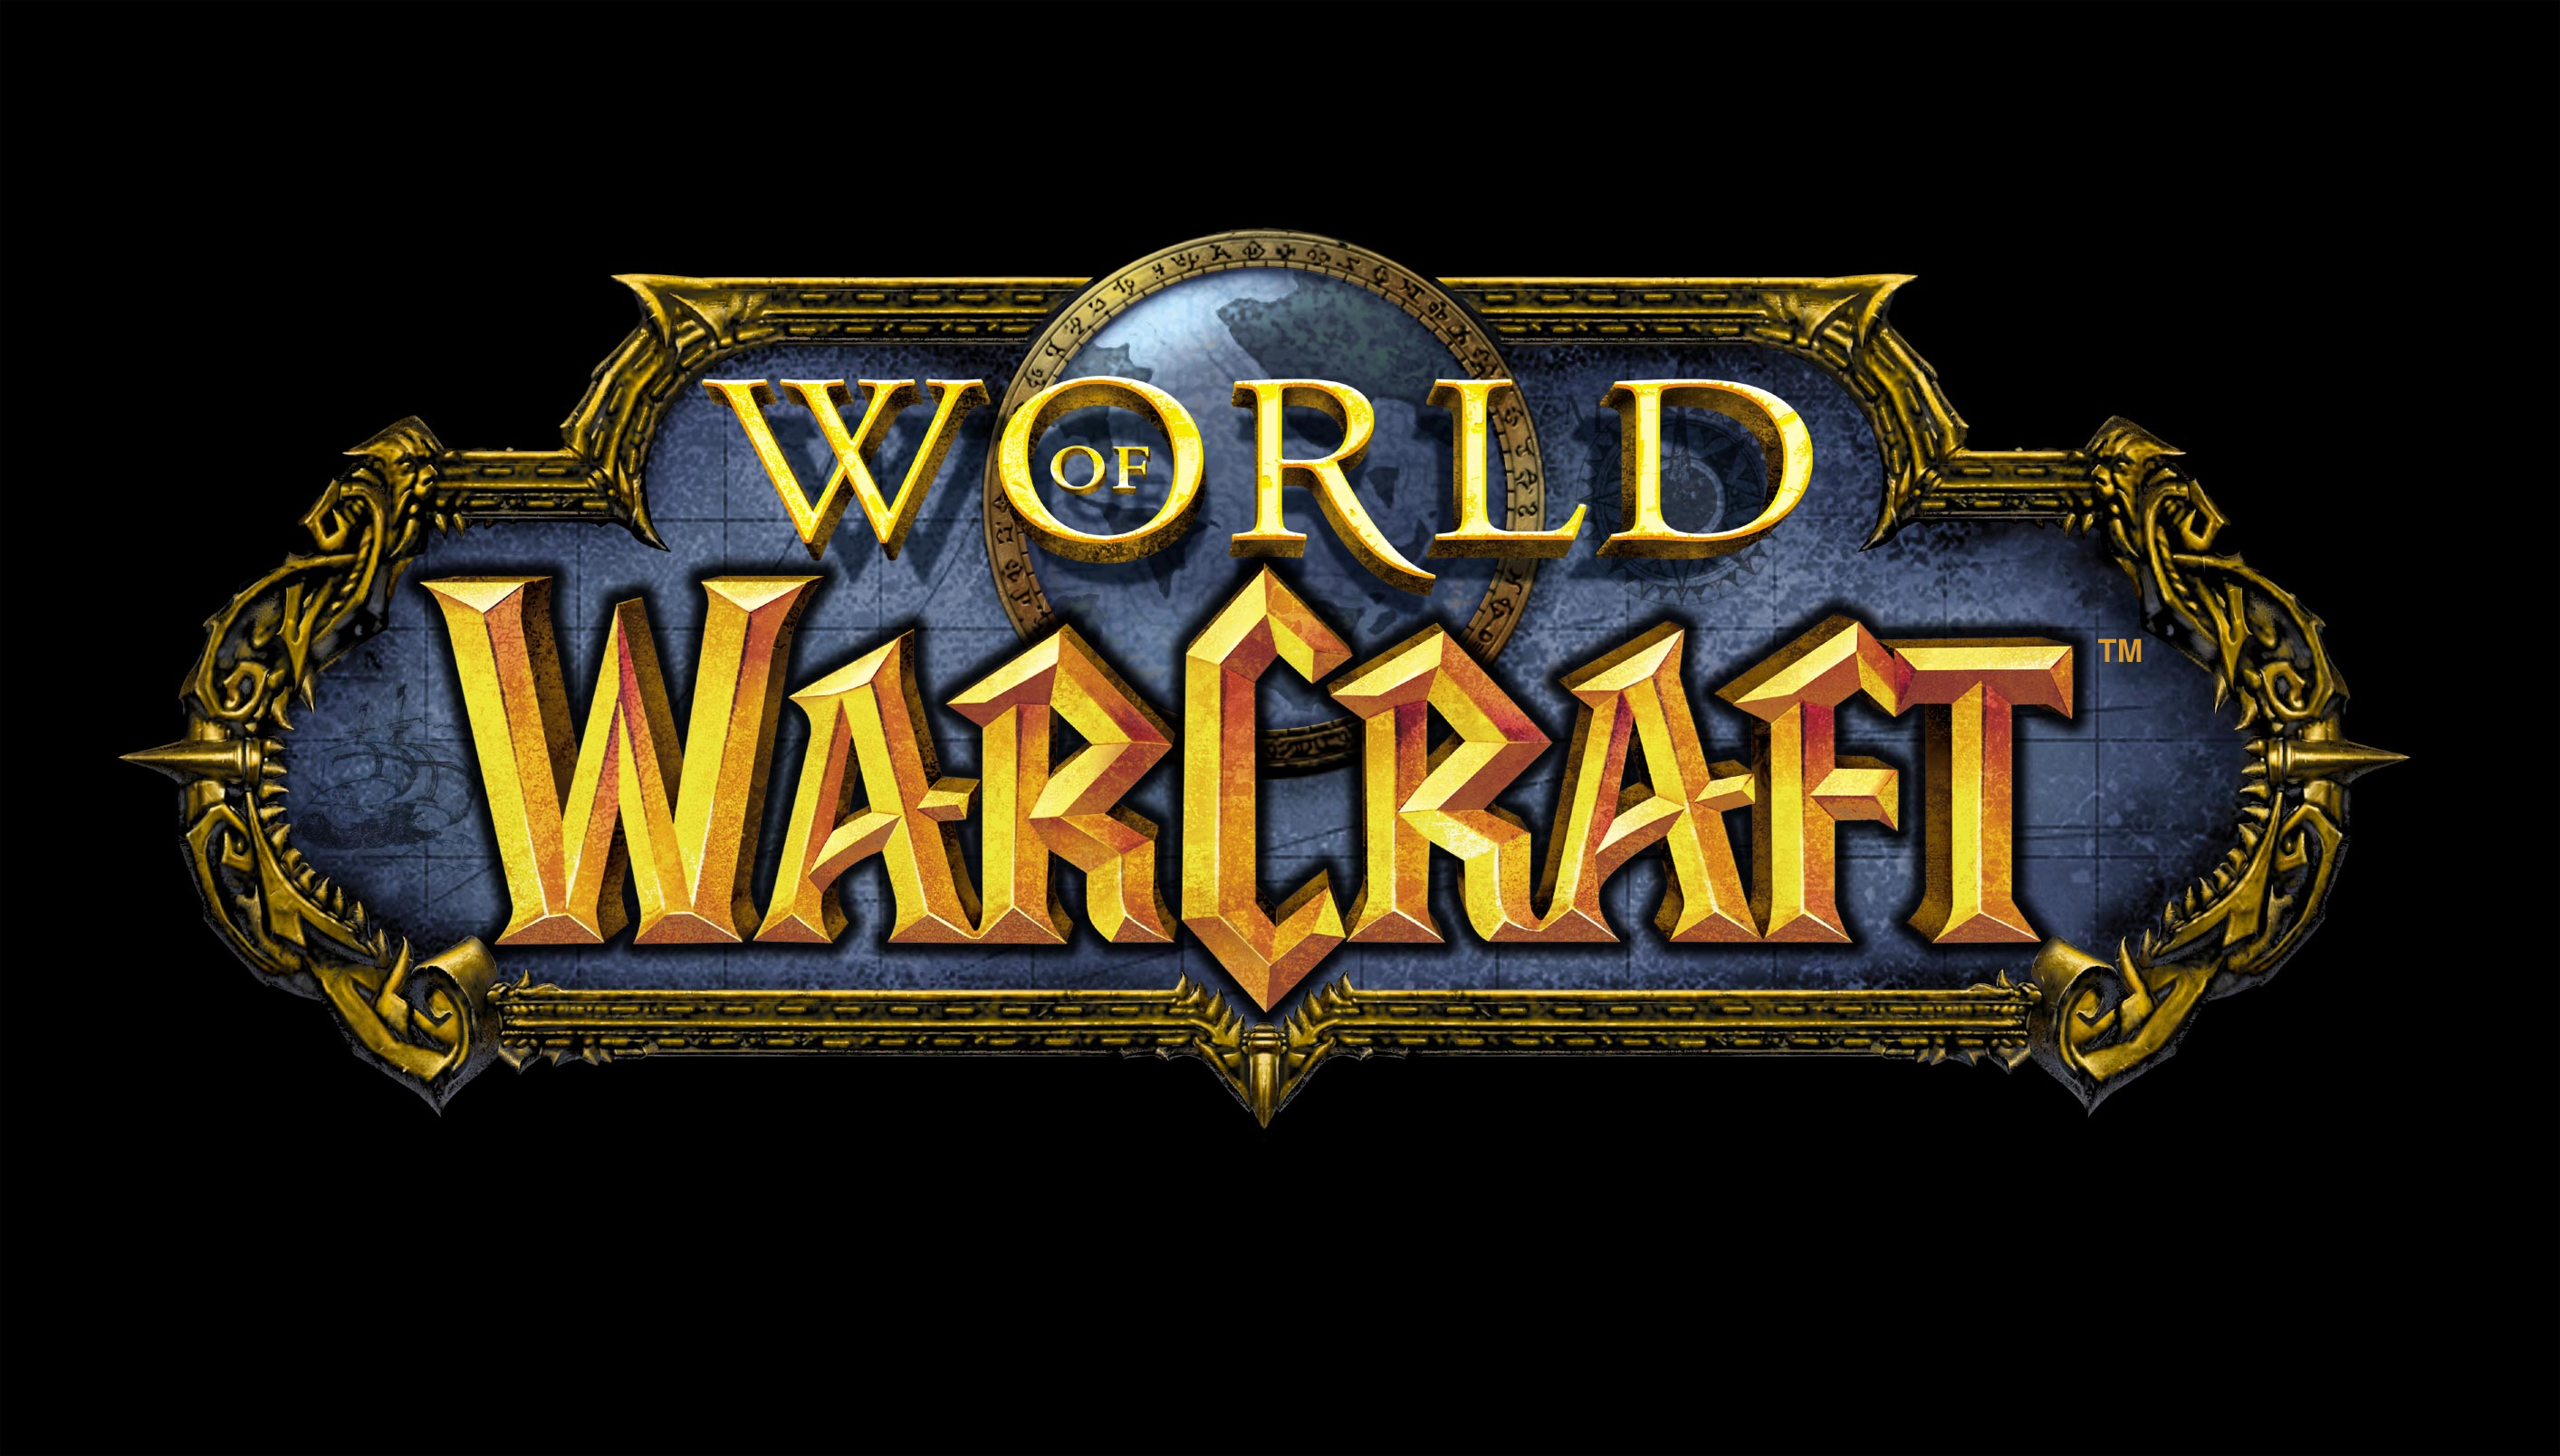 622x240px World Of Warcraft 165.37 KB #362736.